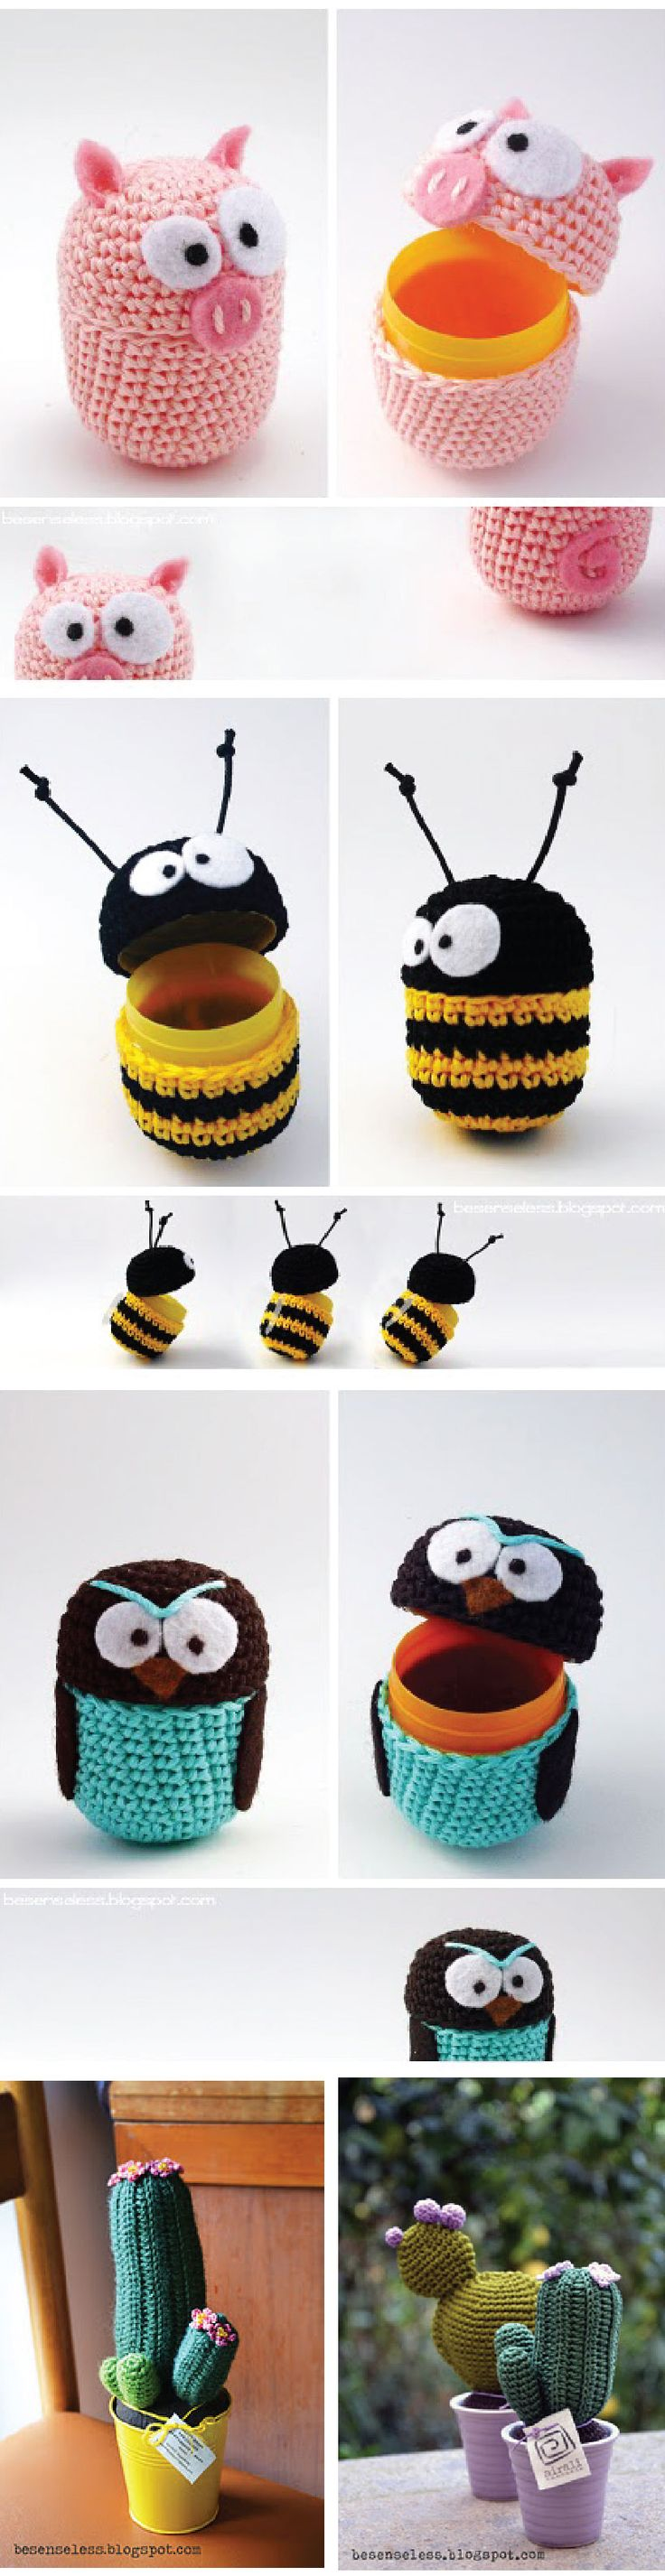 Who knits? I need these in my life. https://besenseless.blogspot.com/2011/05/tutorial-ovetti-amigurumi.html Easter clipart ideas